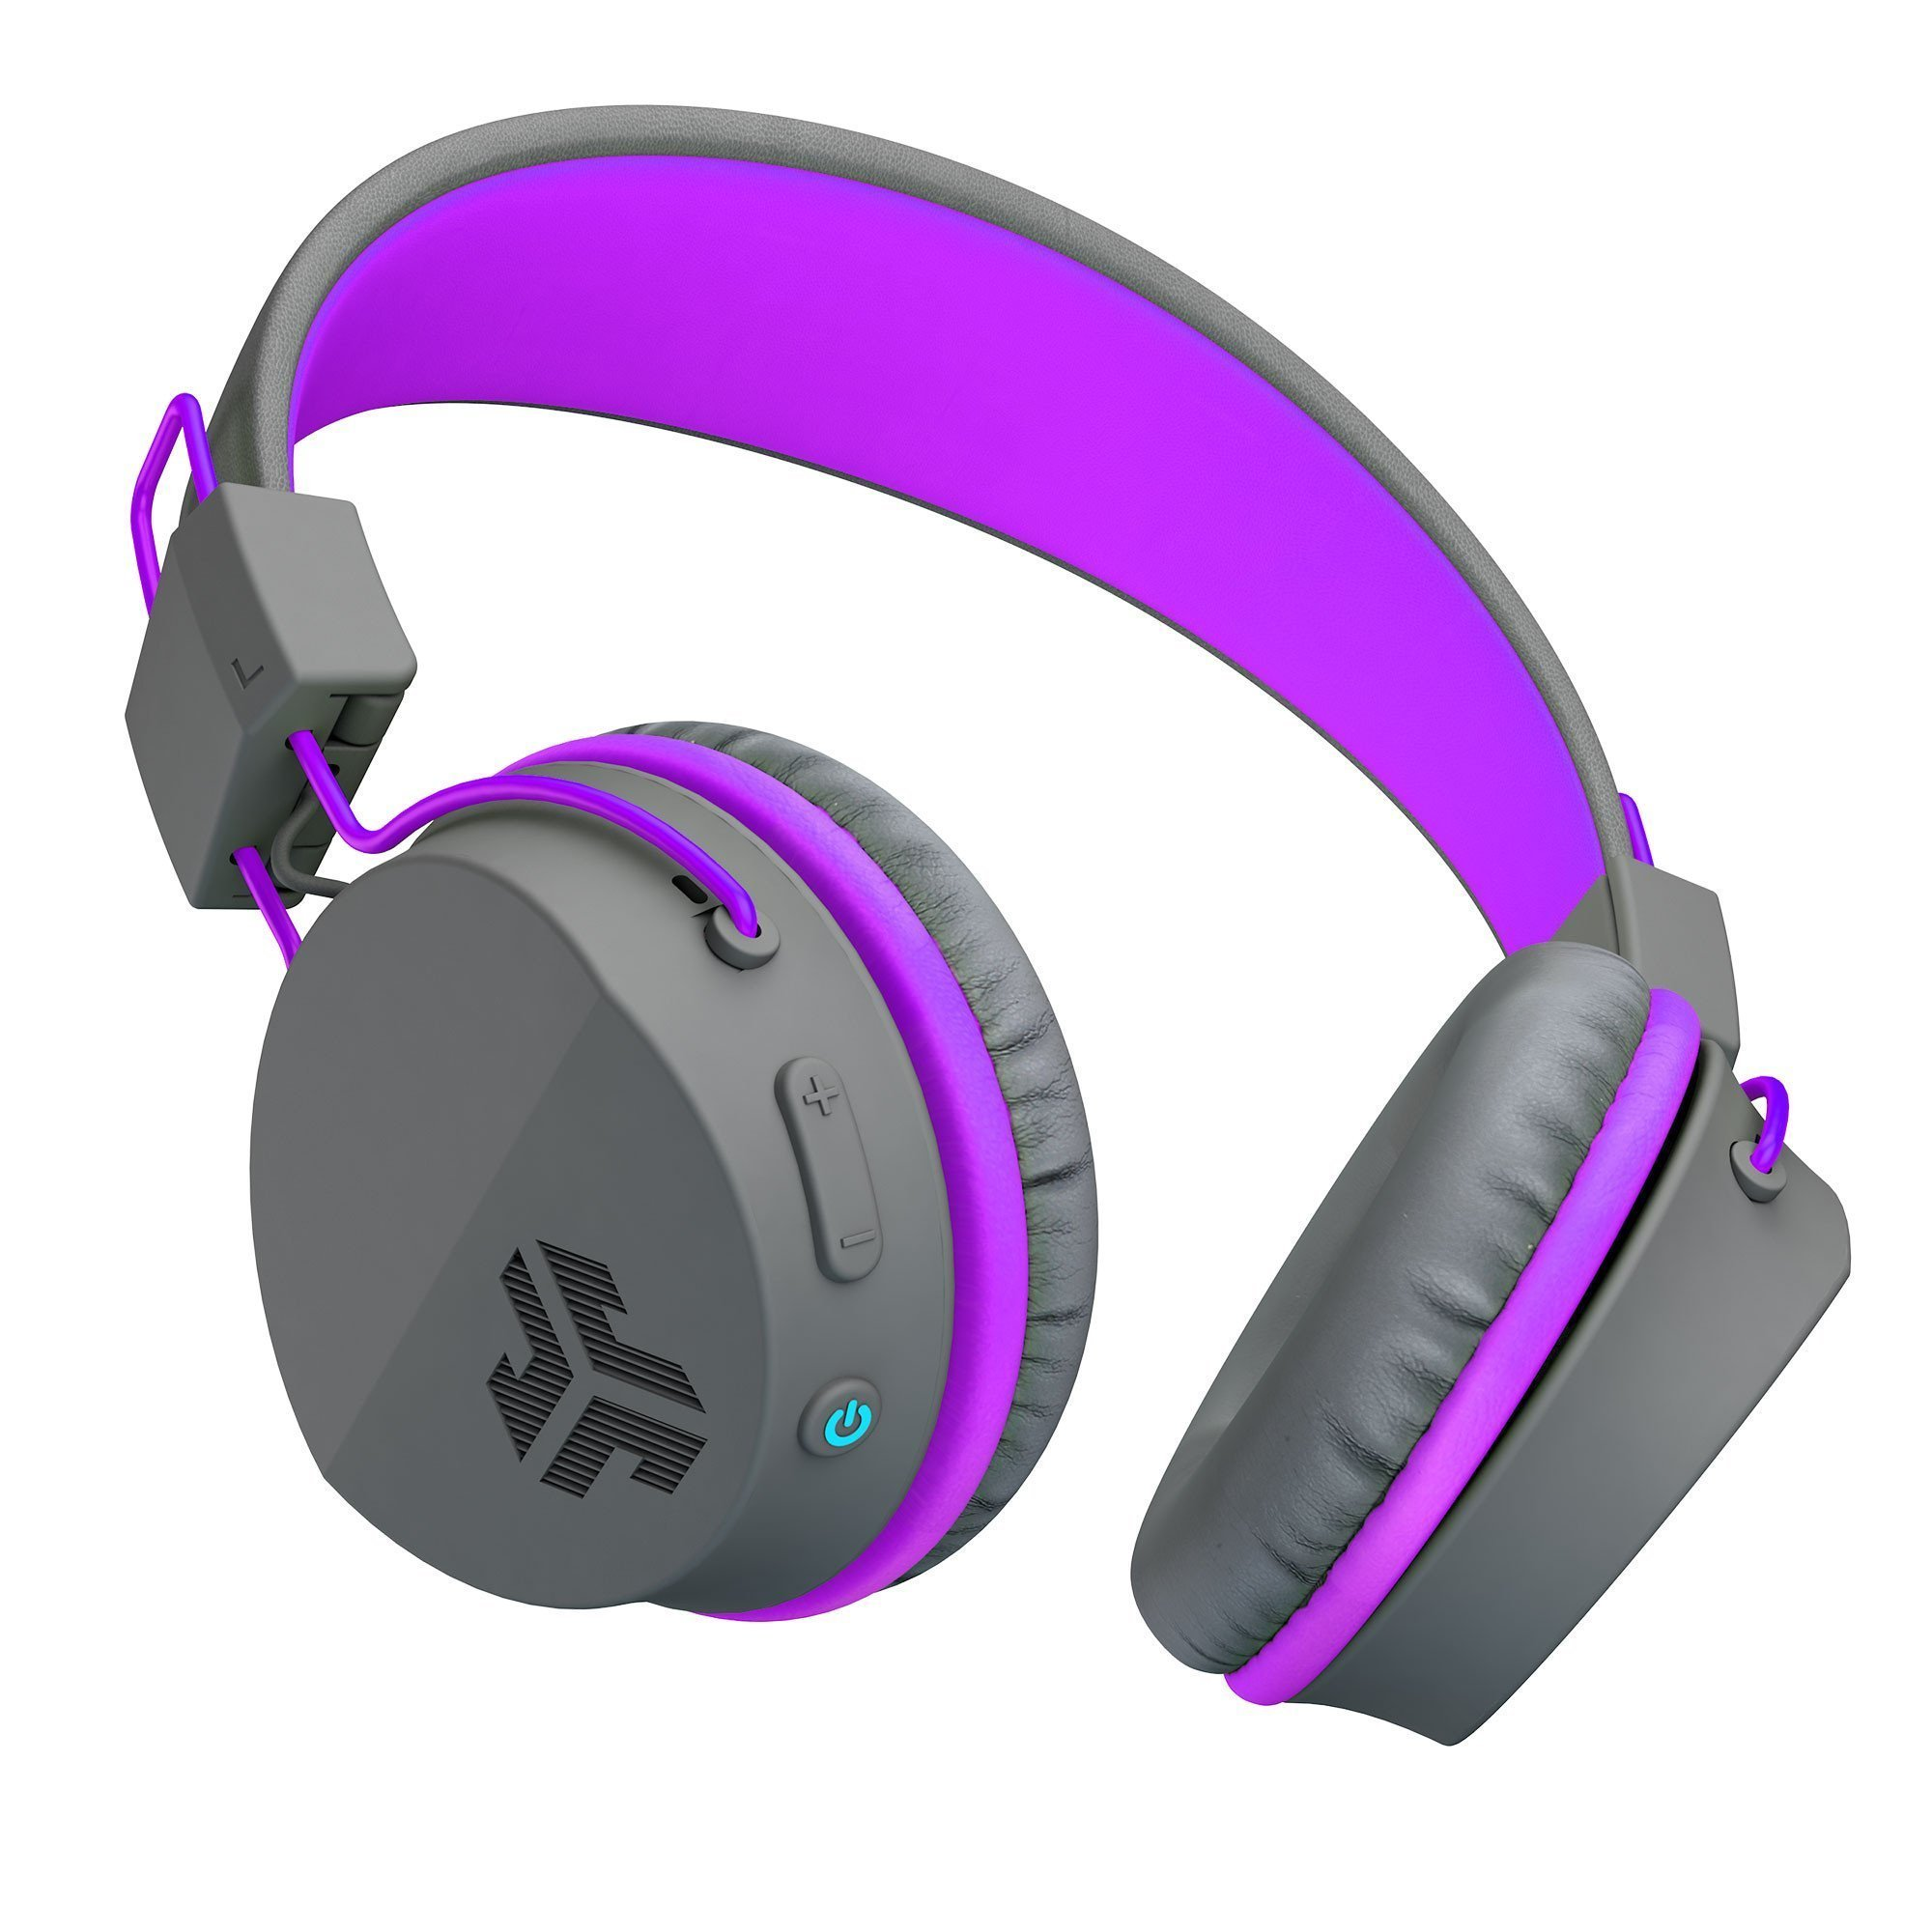 JLab Neon Wireless Headphone Review